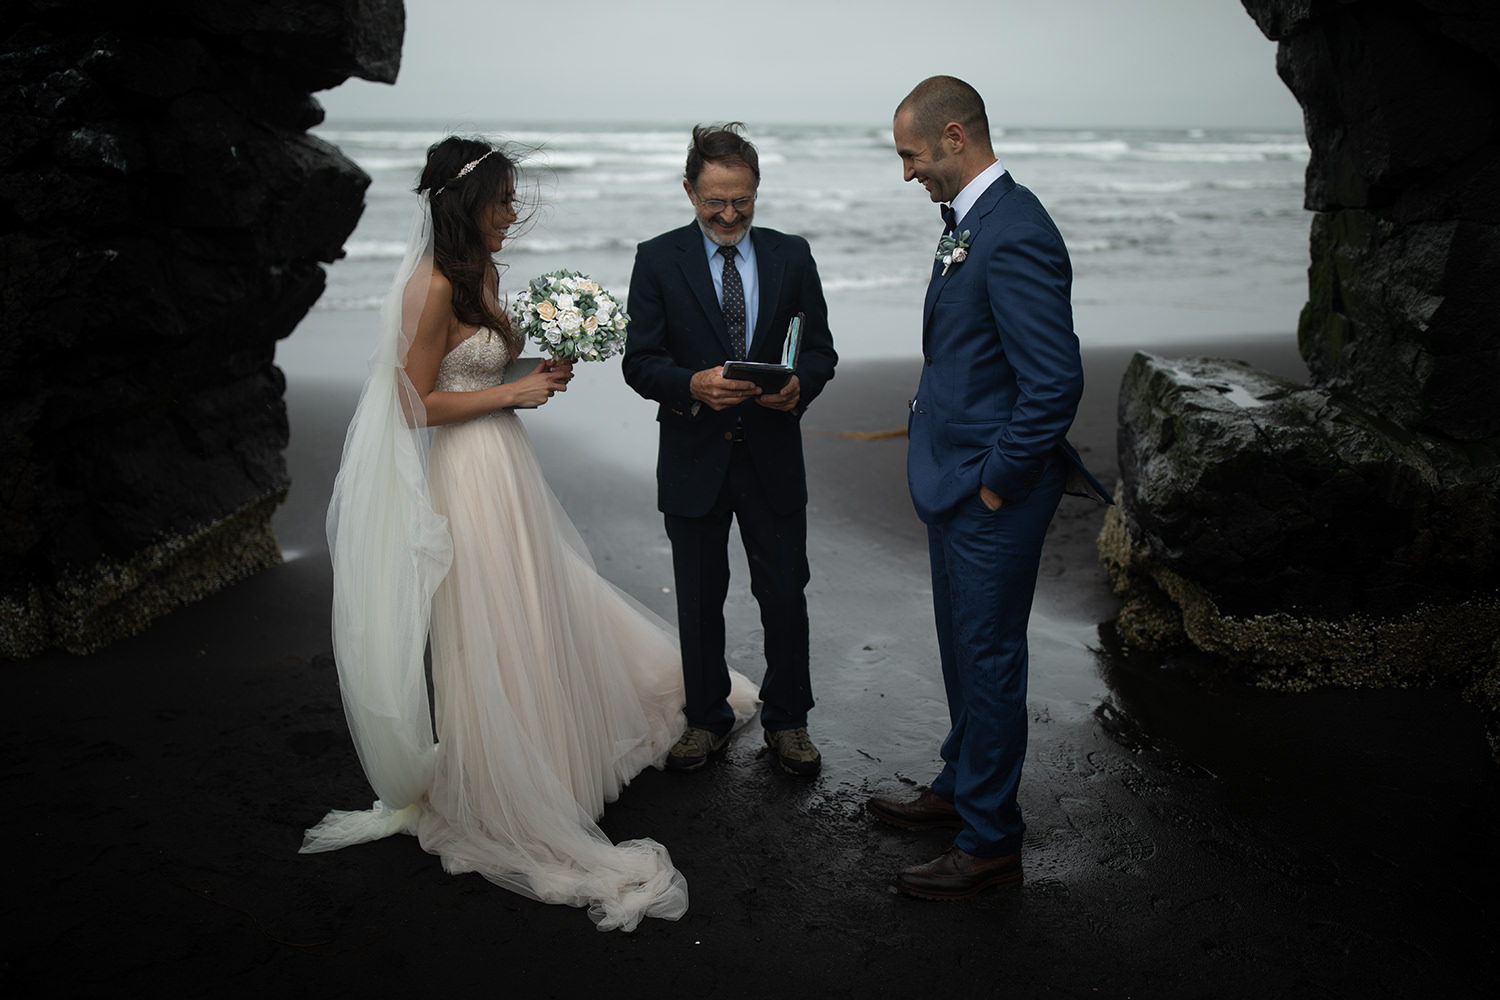 An unedited photo of a wedding ceremony takes place at a beach.